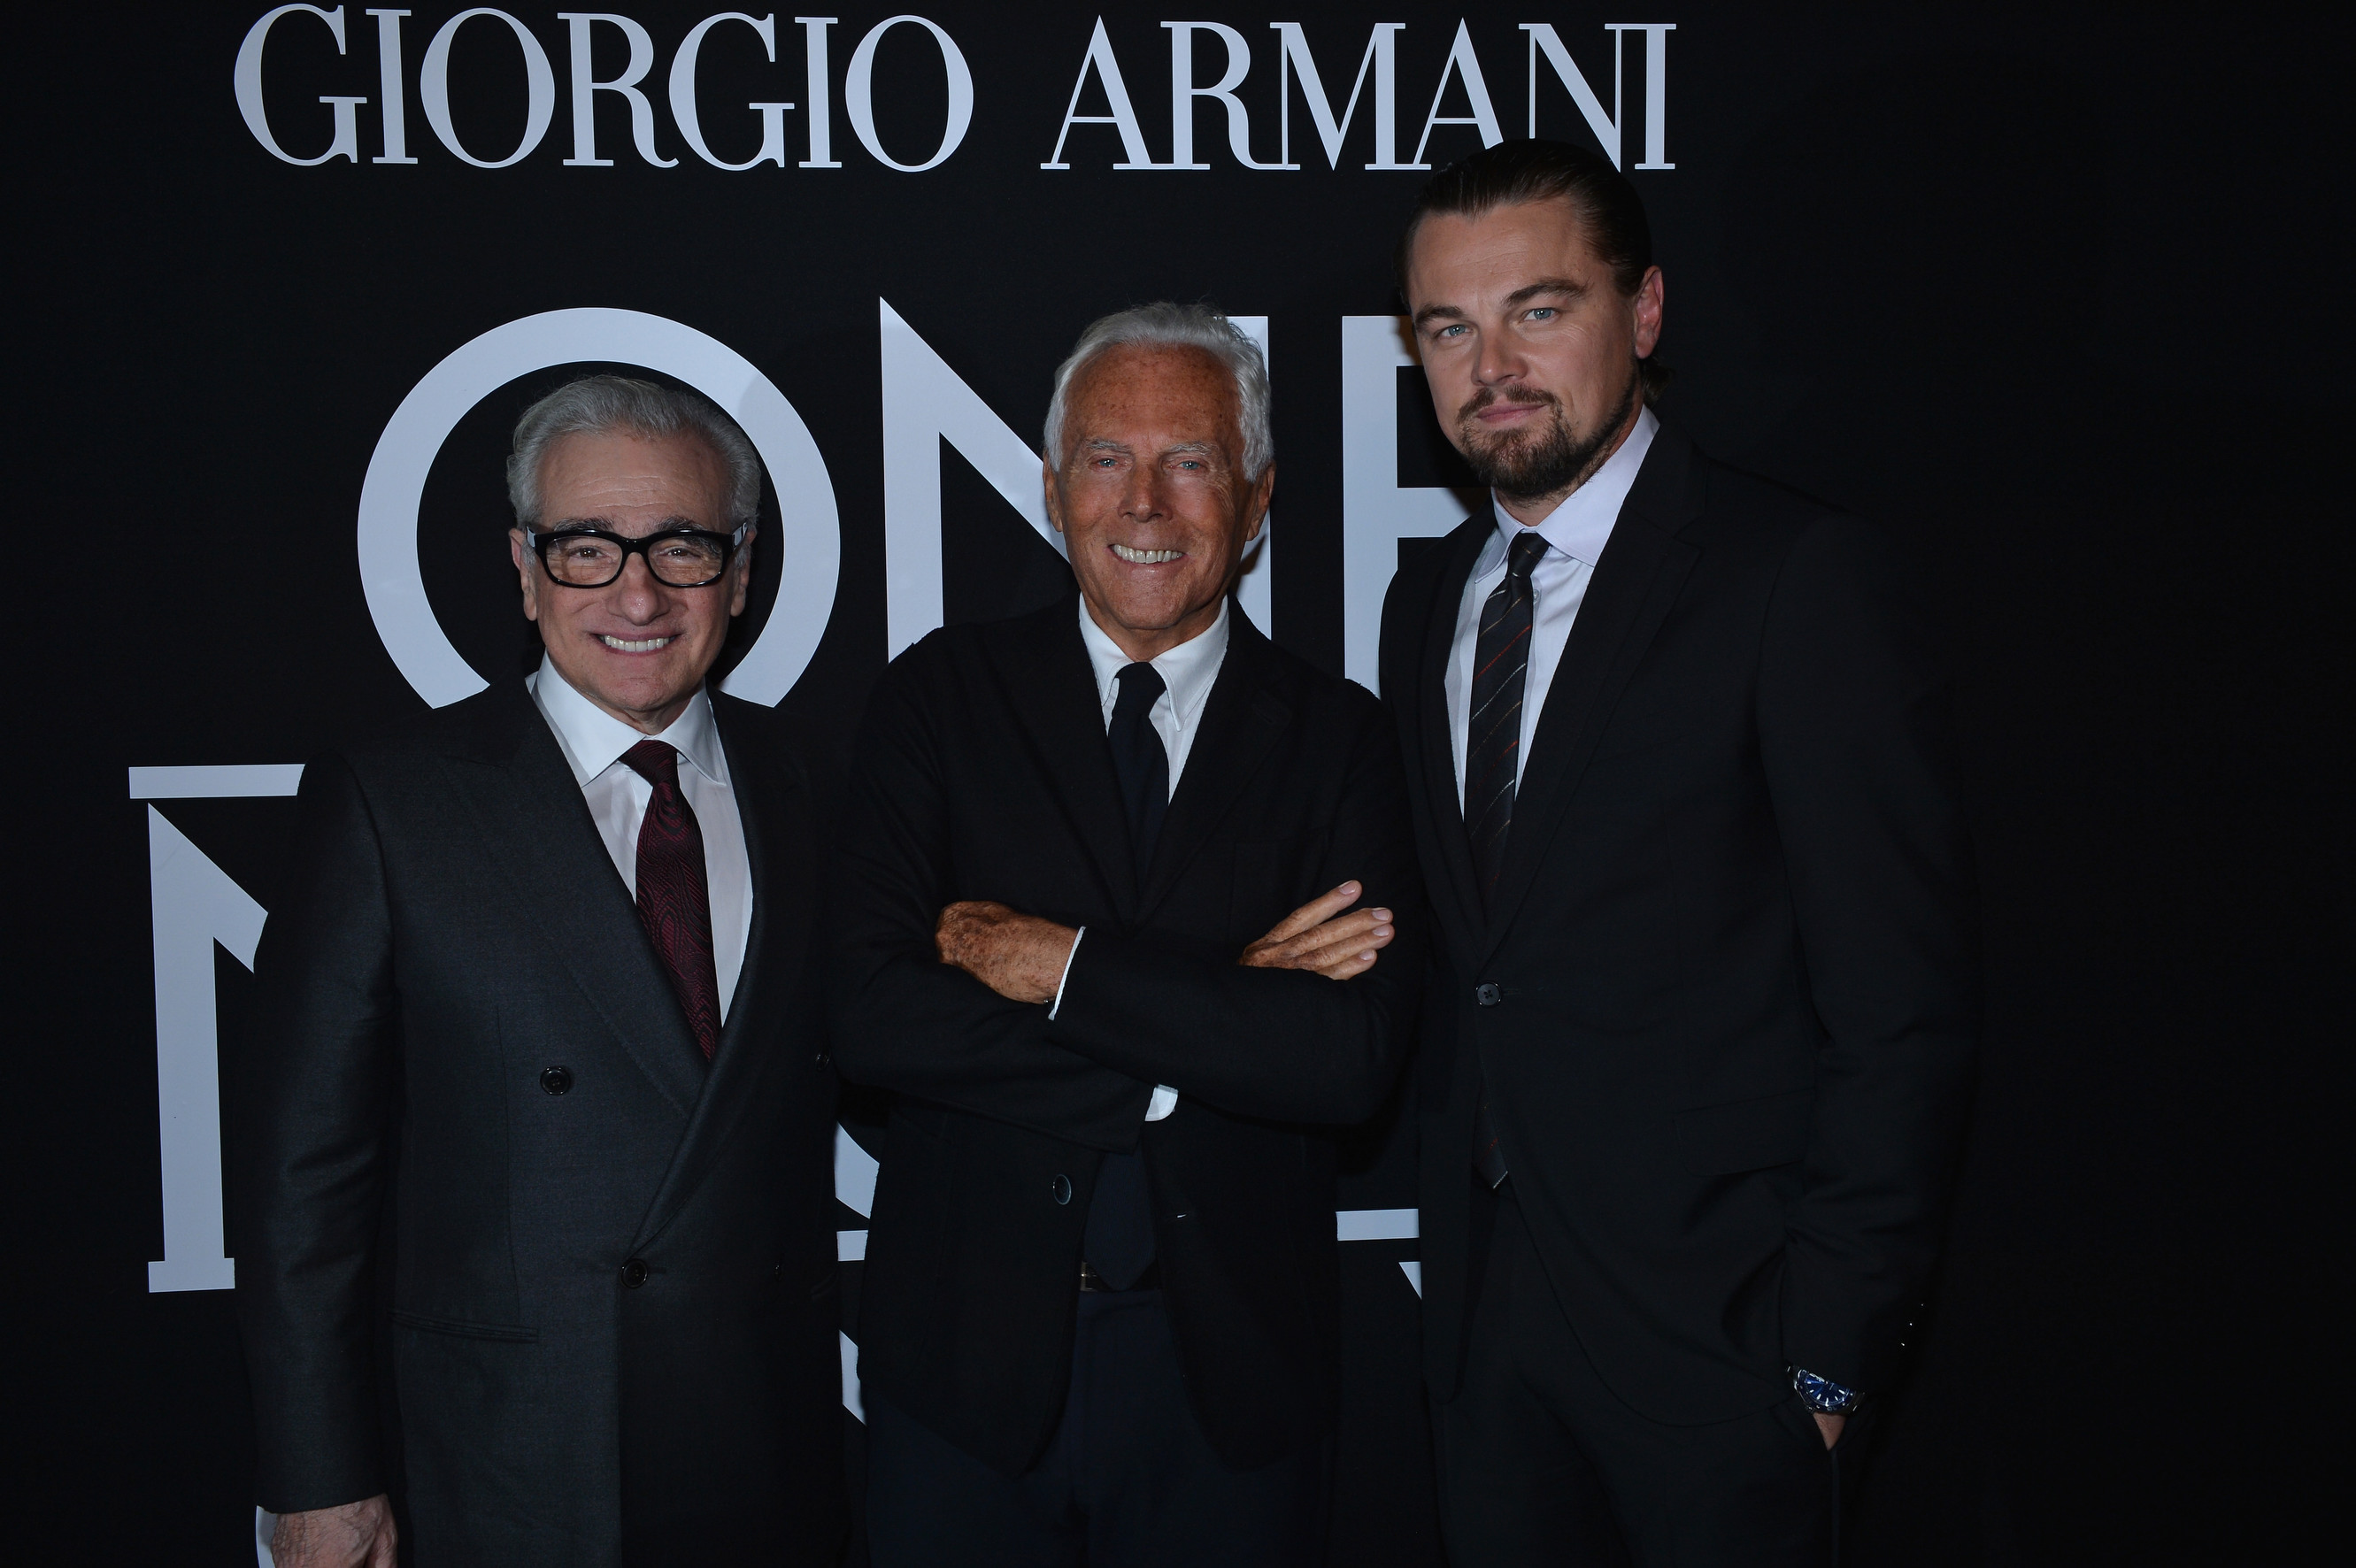 Giorgio Armani Collaborates with Martin Scorsese for 'The Wolf of Wall Street'